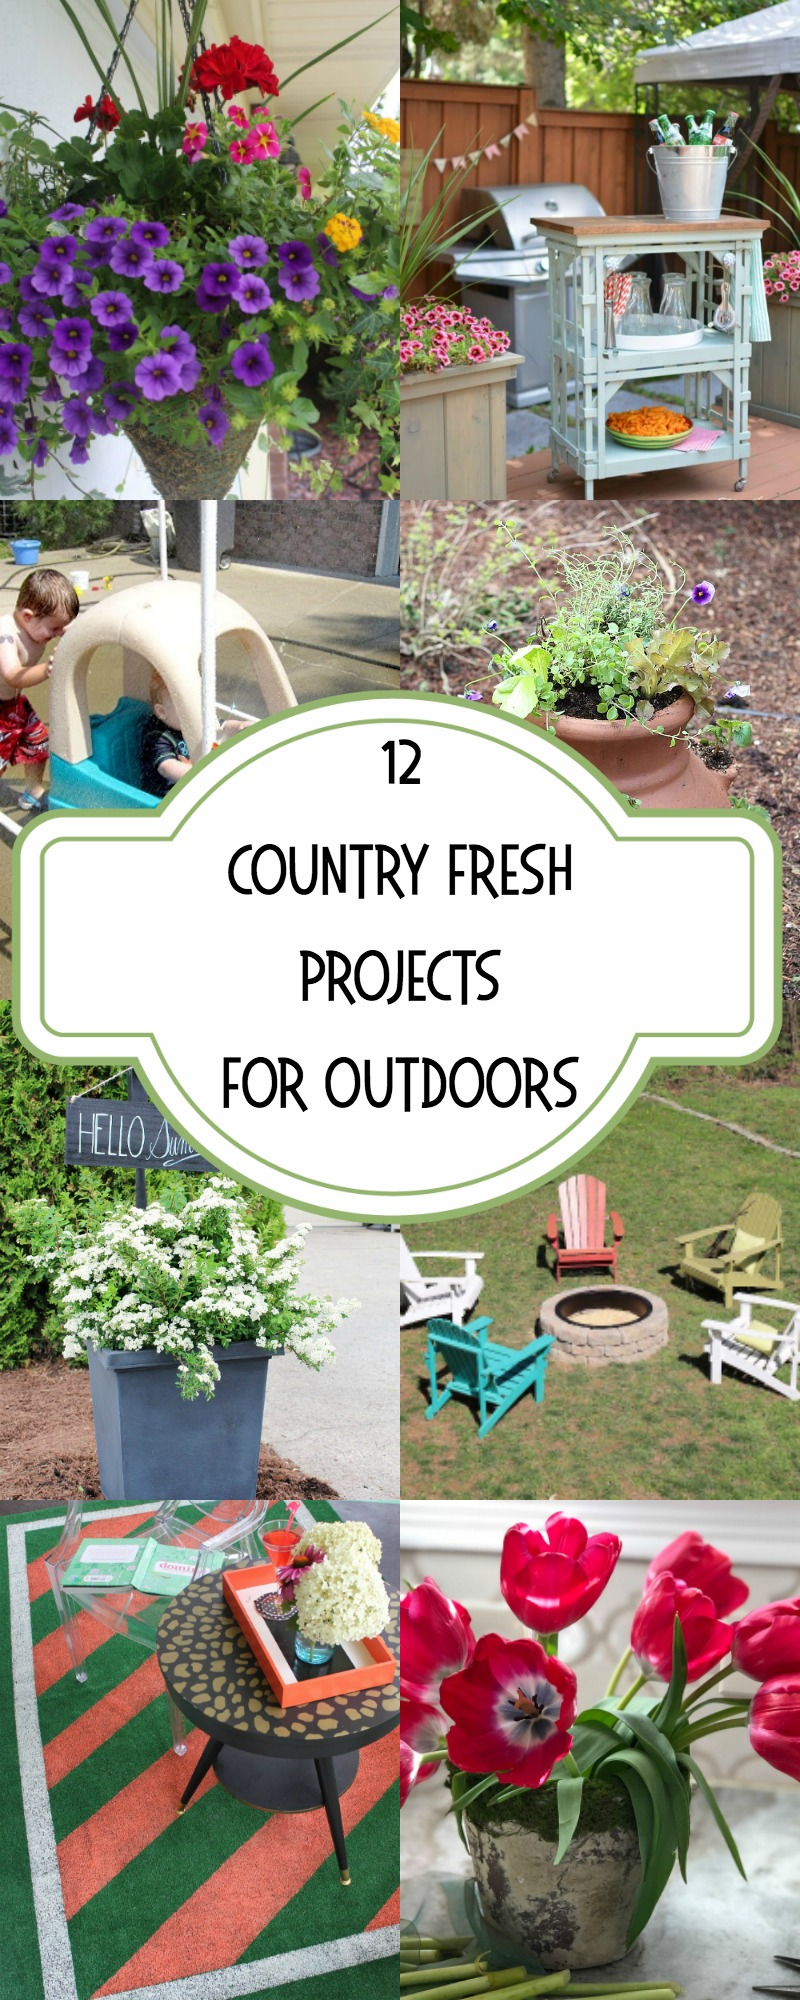 Country Fresh Projects for Outdoors